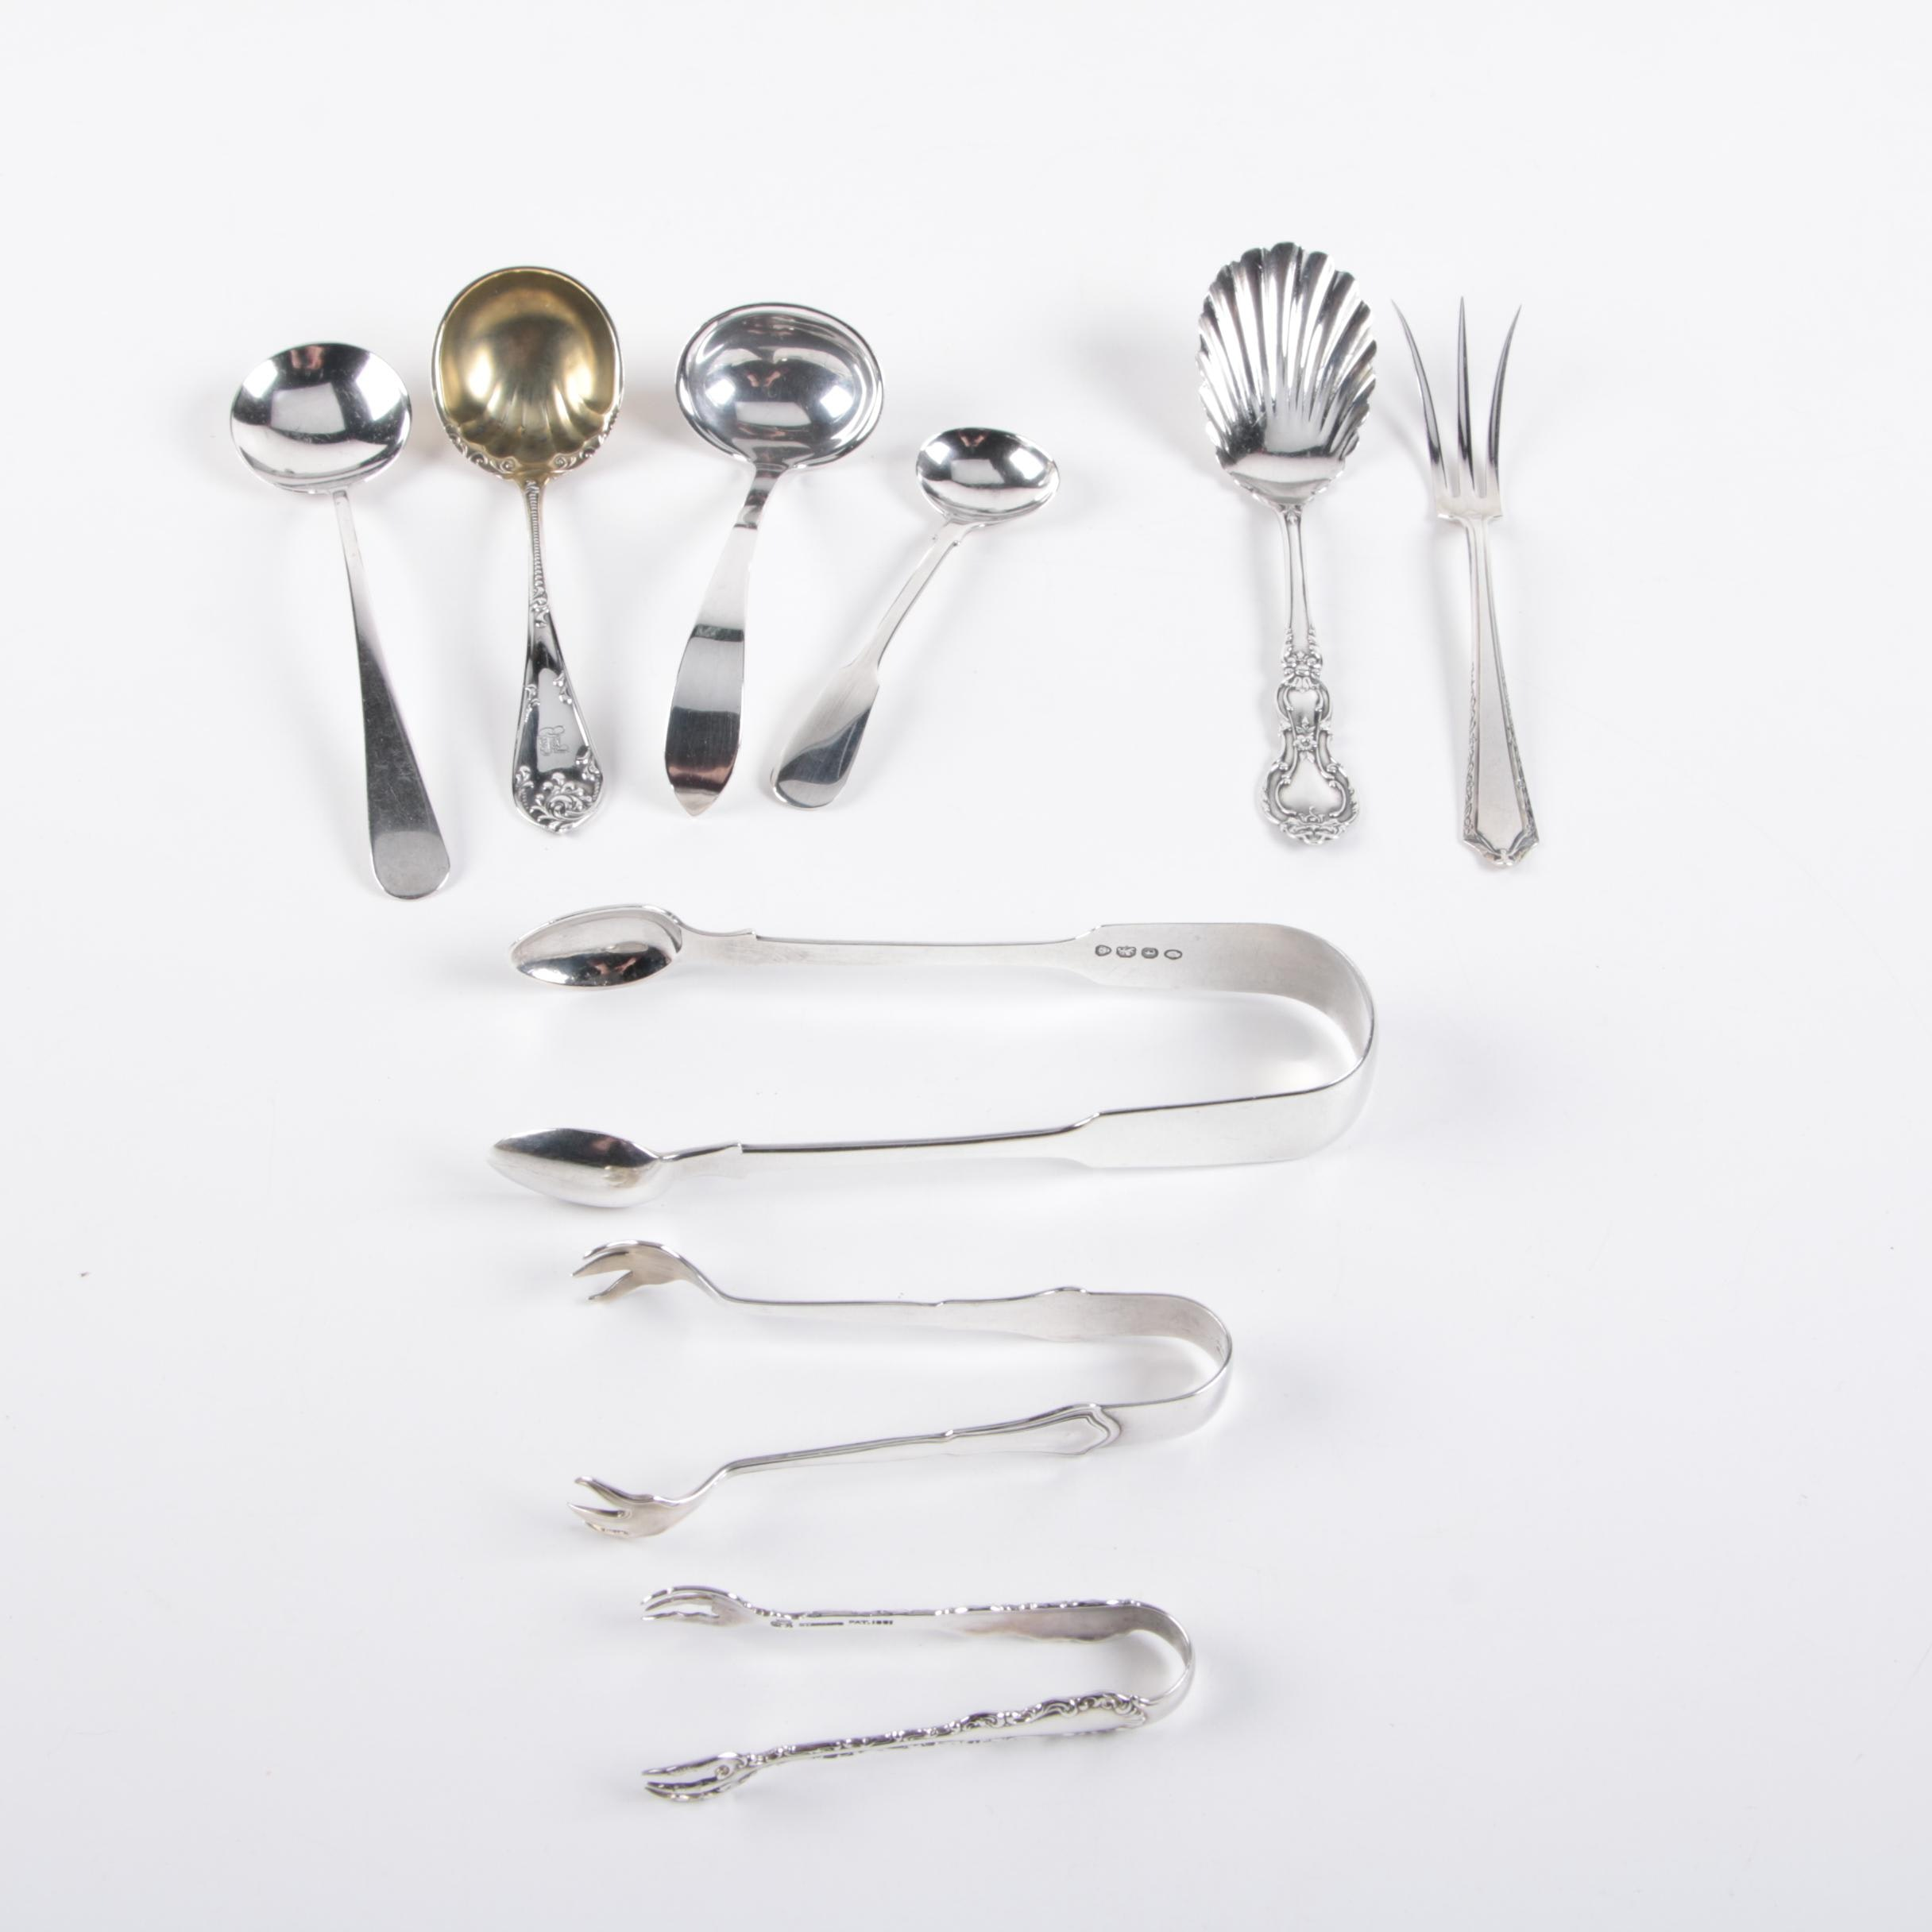 Early 19th Century English Sterling Flatware with Towle and Other Sterling